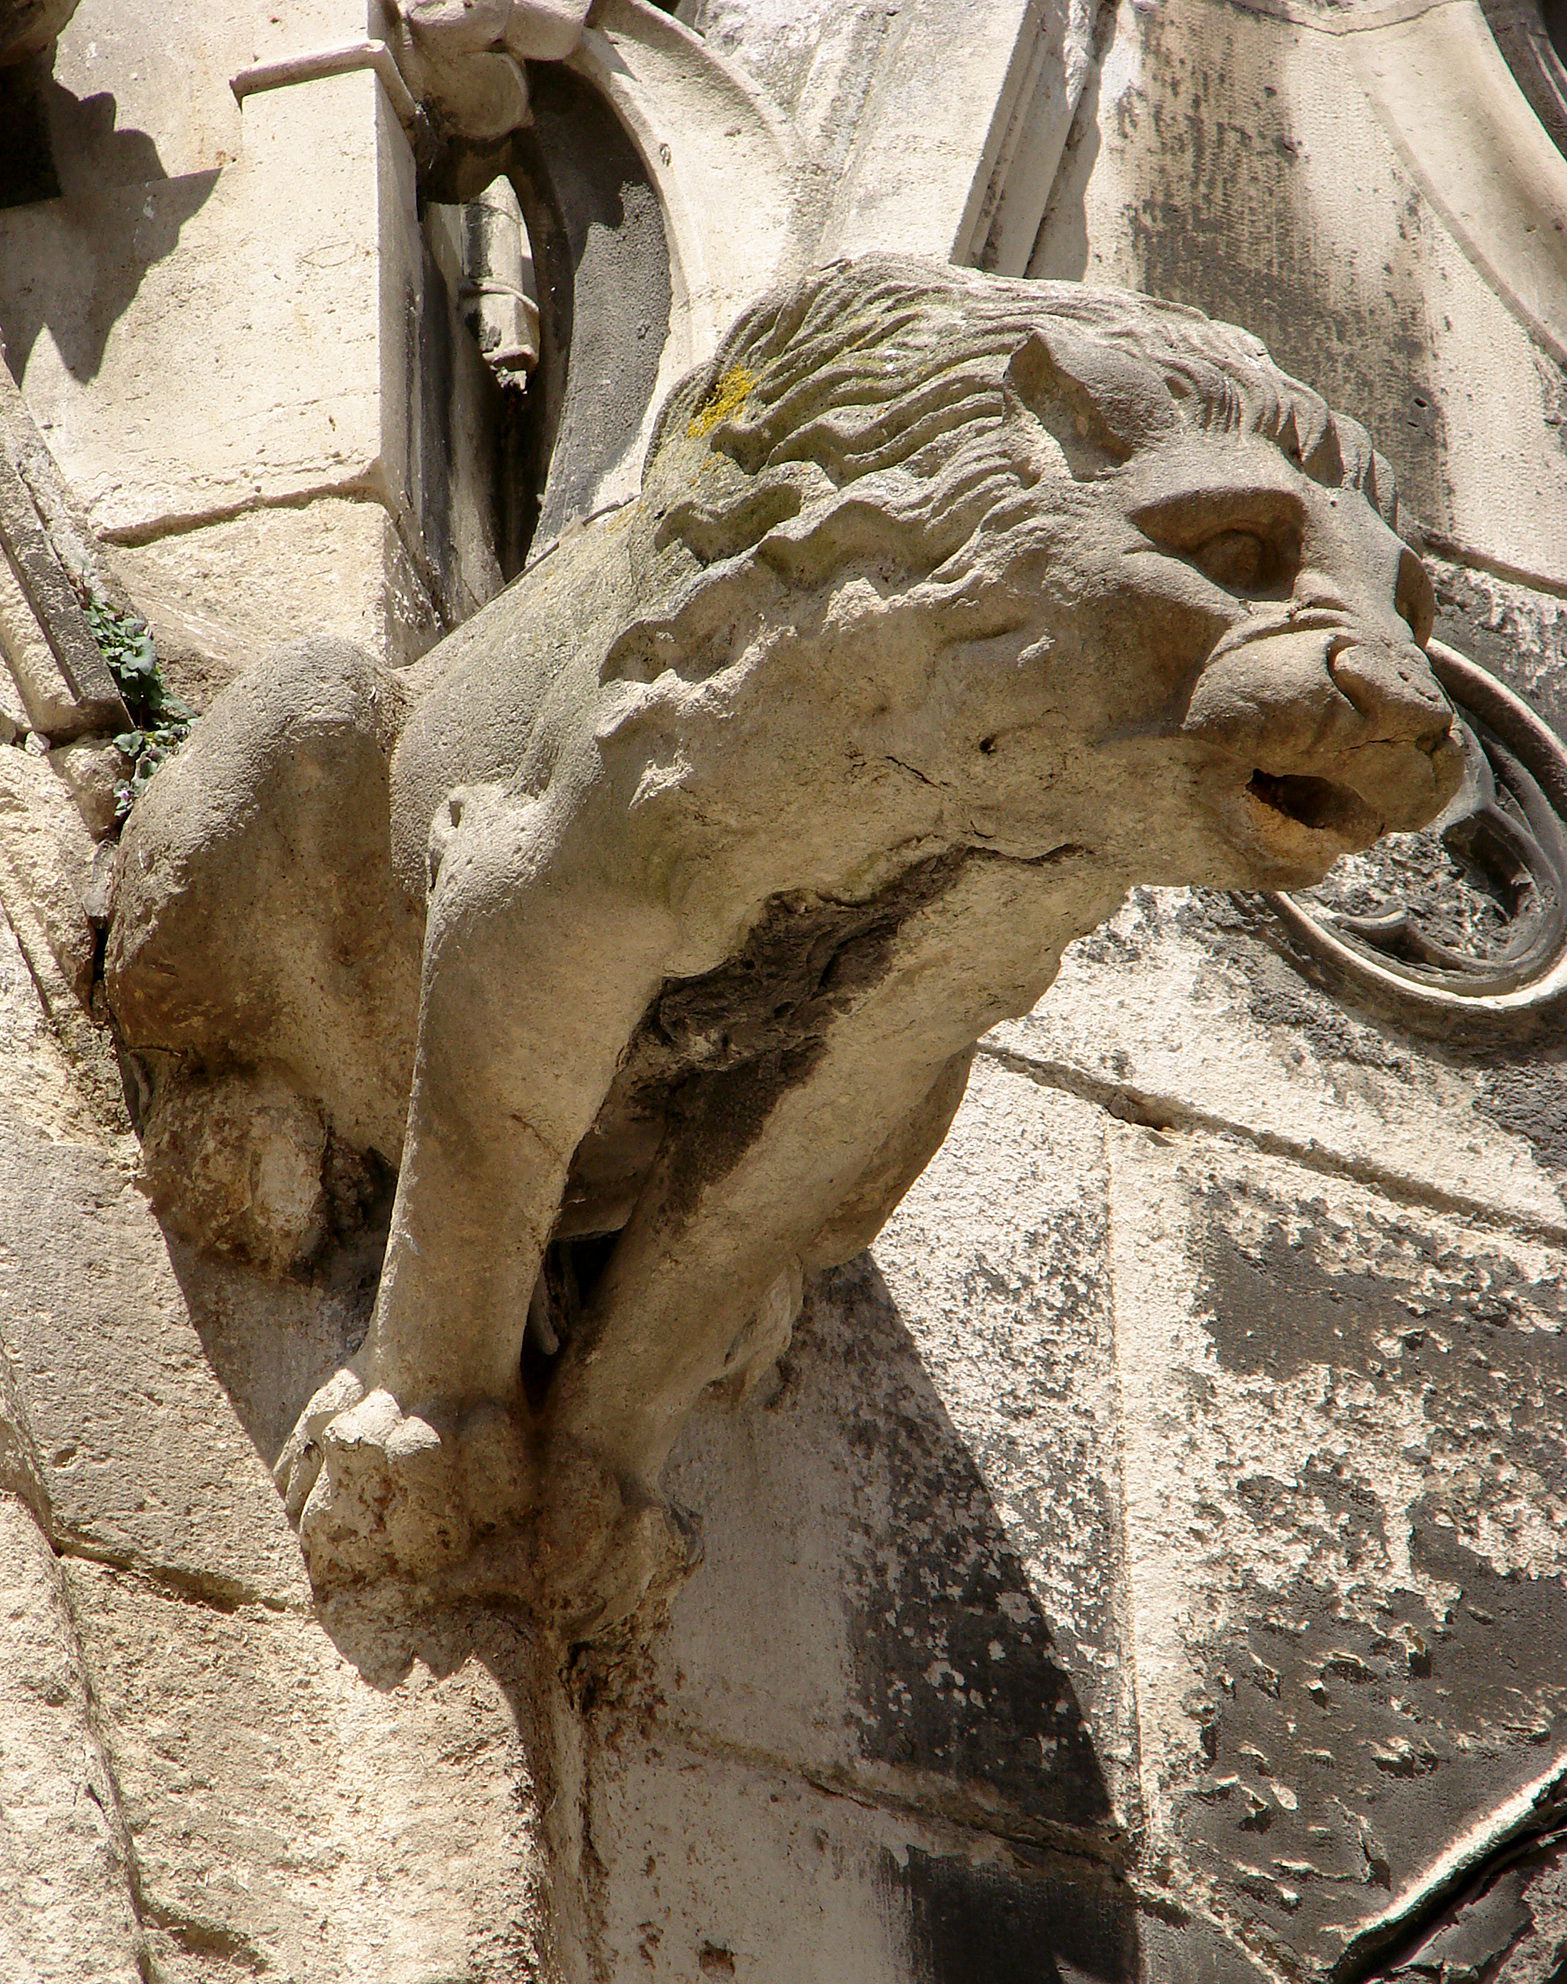 A Gargoyle at the Cathedral of Meaux